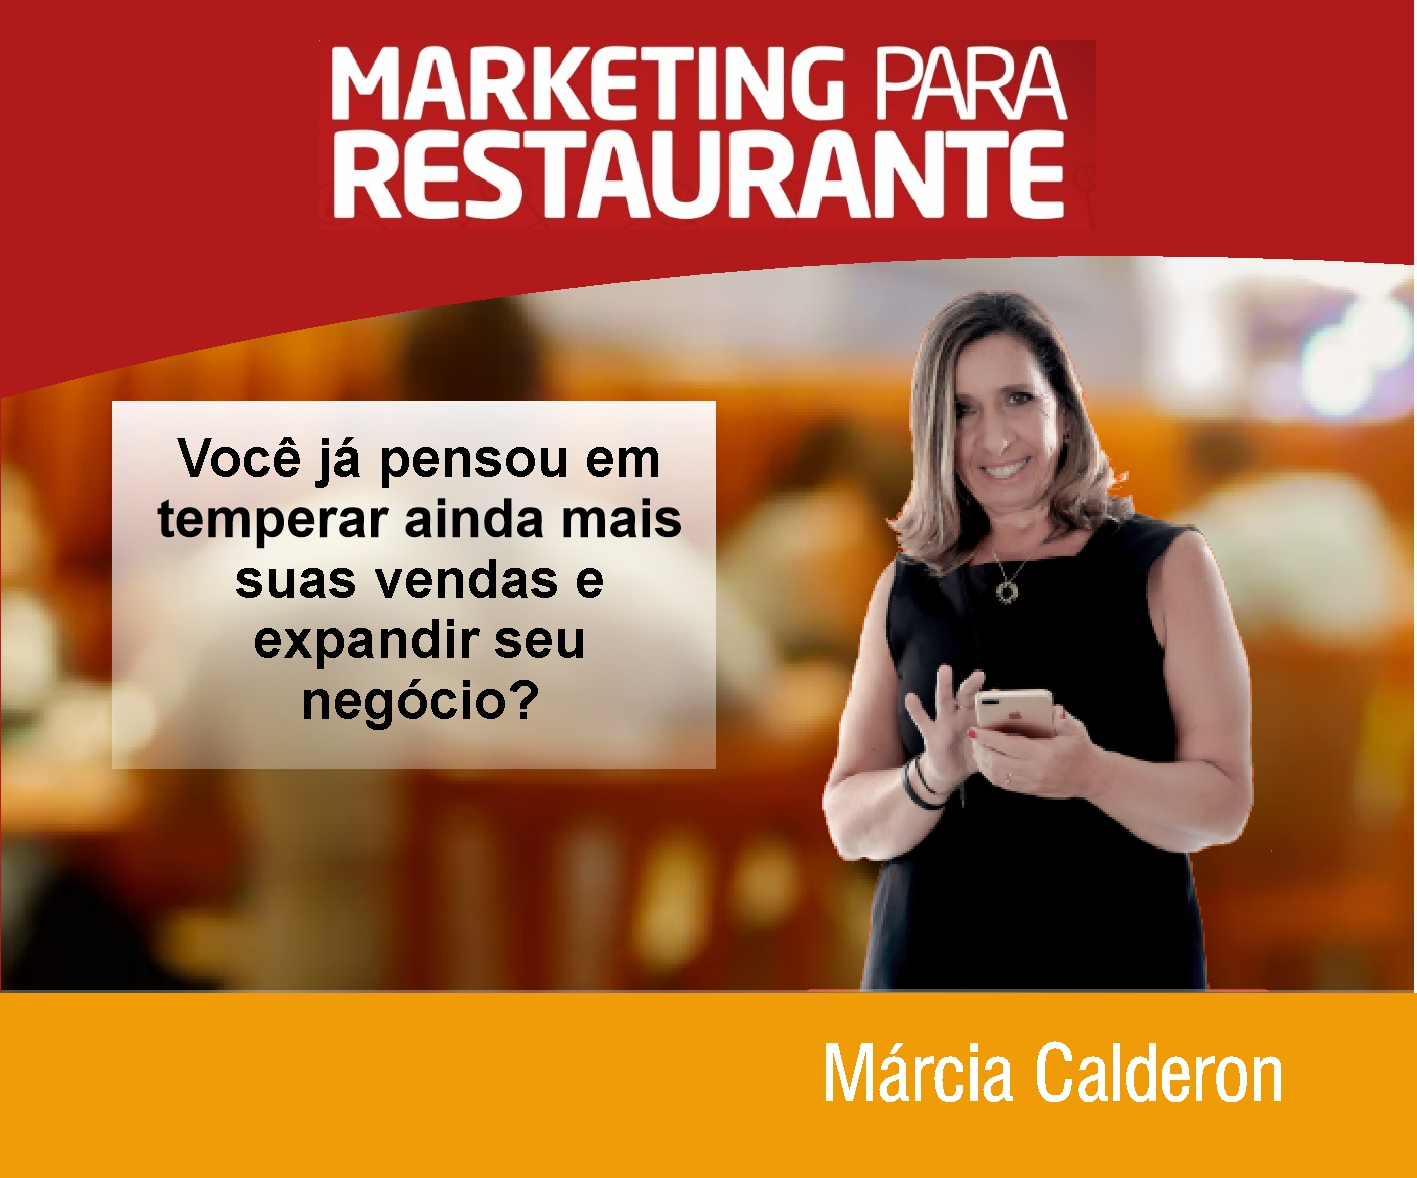 CURSO DE MARKETING PARA RESTAURANTES